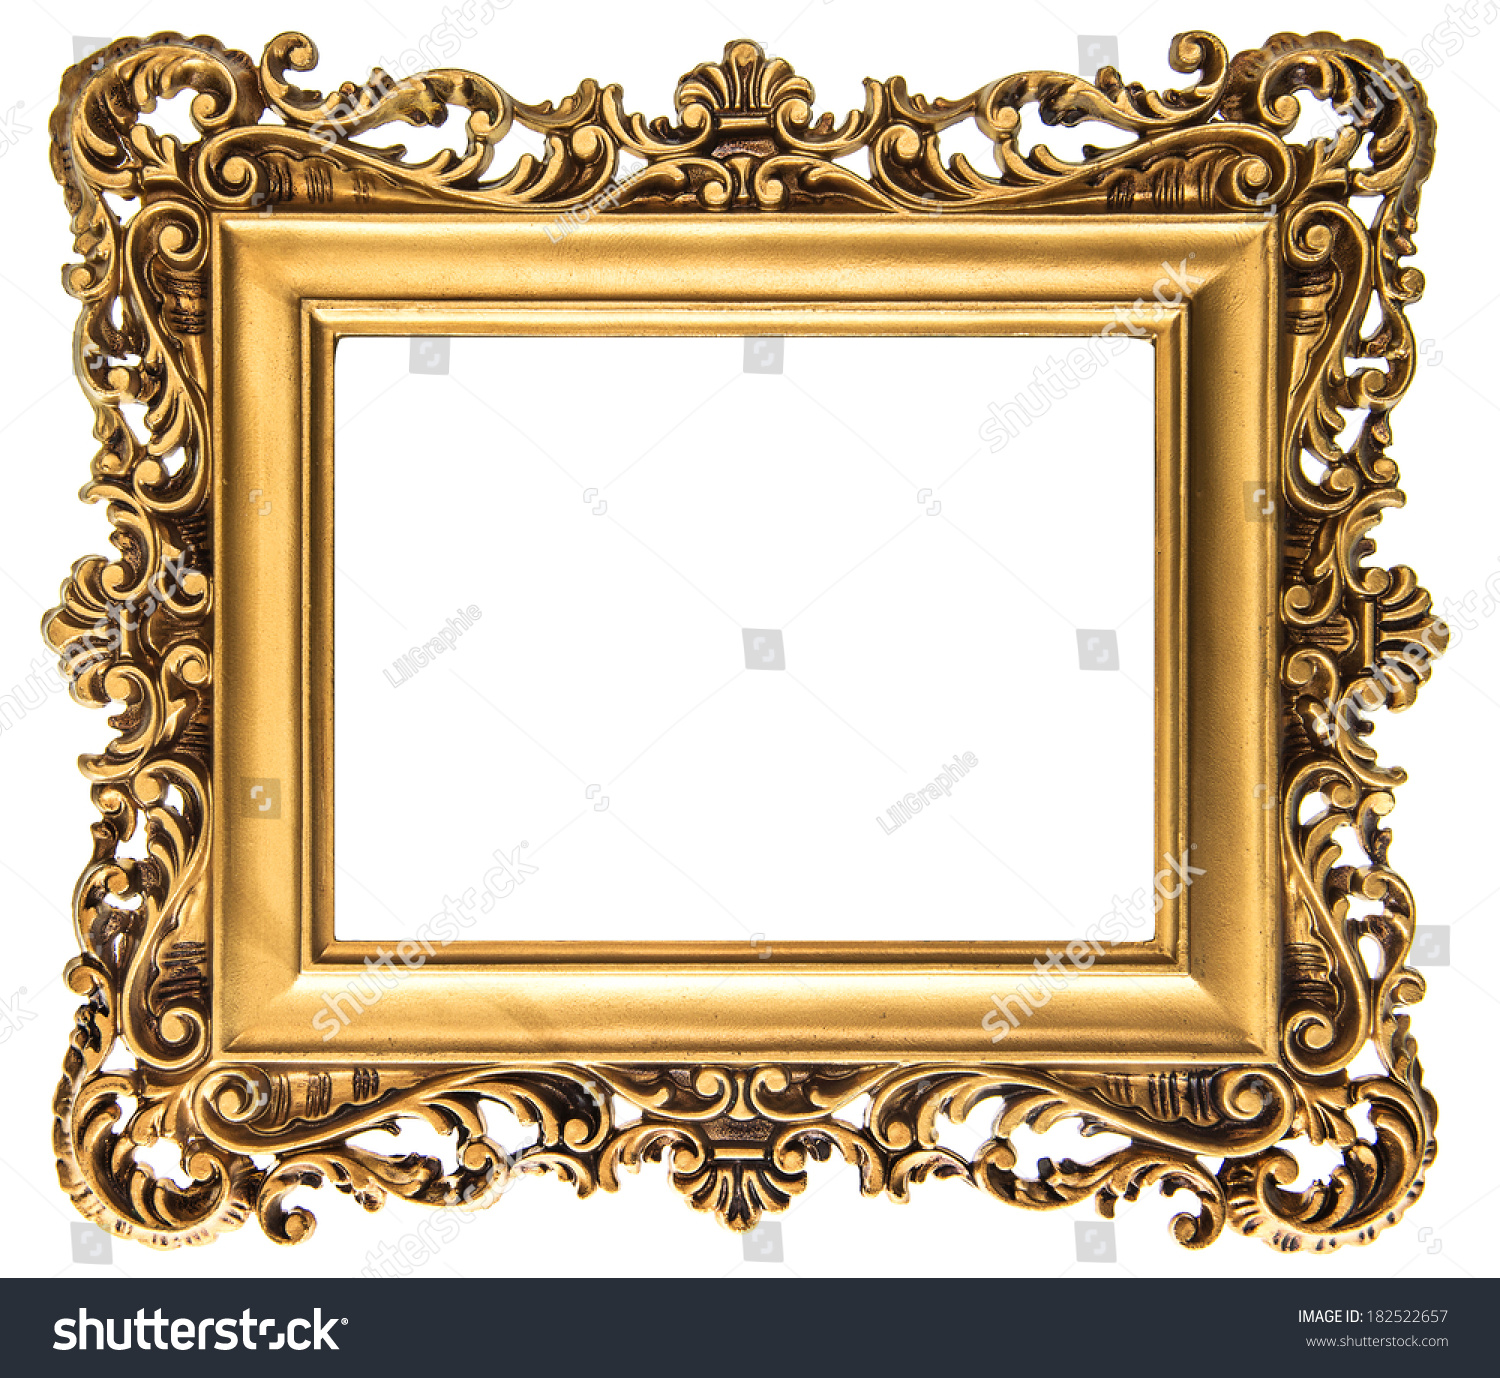 vintage golden picture frame isolated on stock photo 182522657 shutterstock. Black Bedroom Furniture Sets. Home Design Ideas